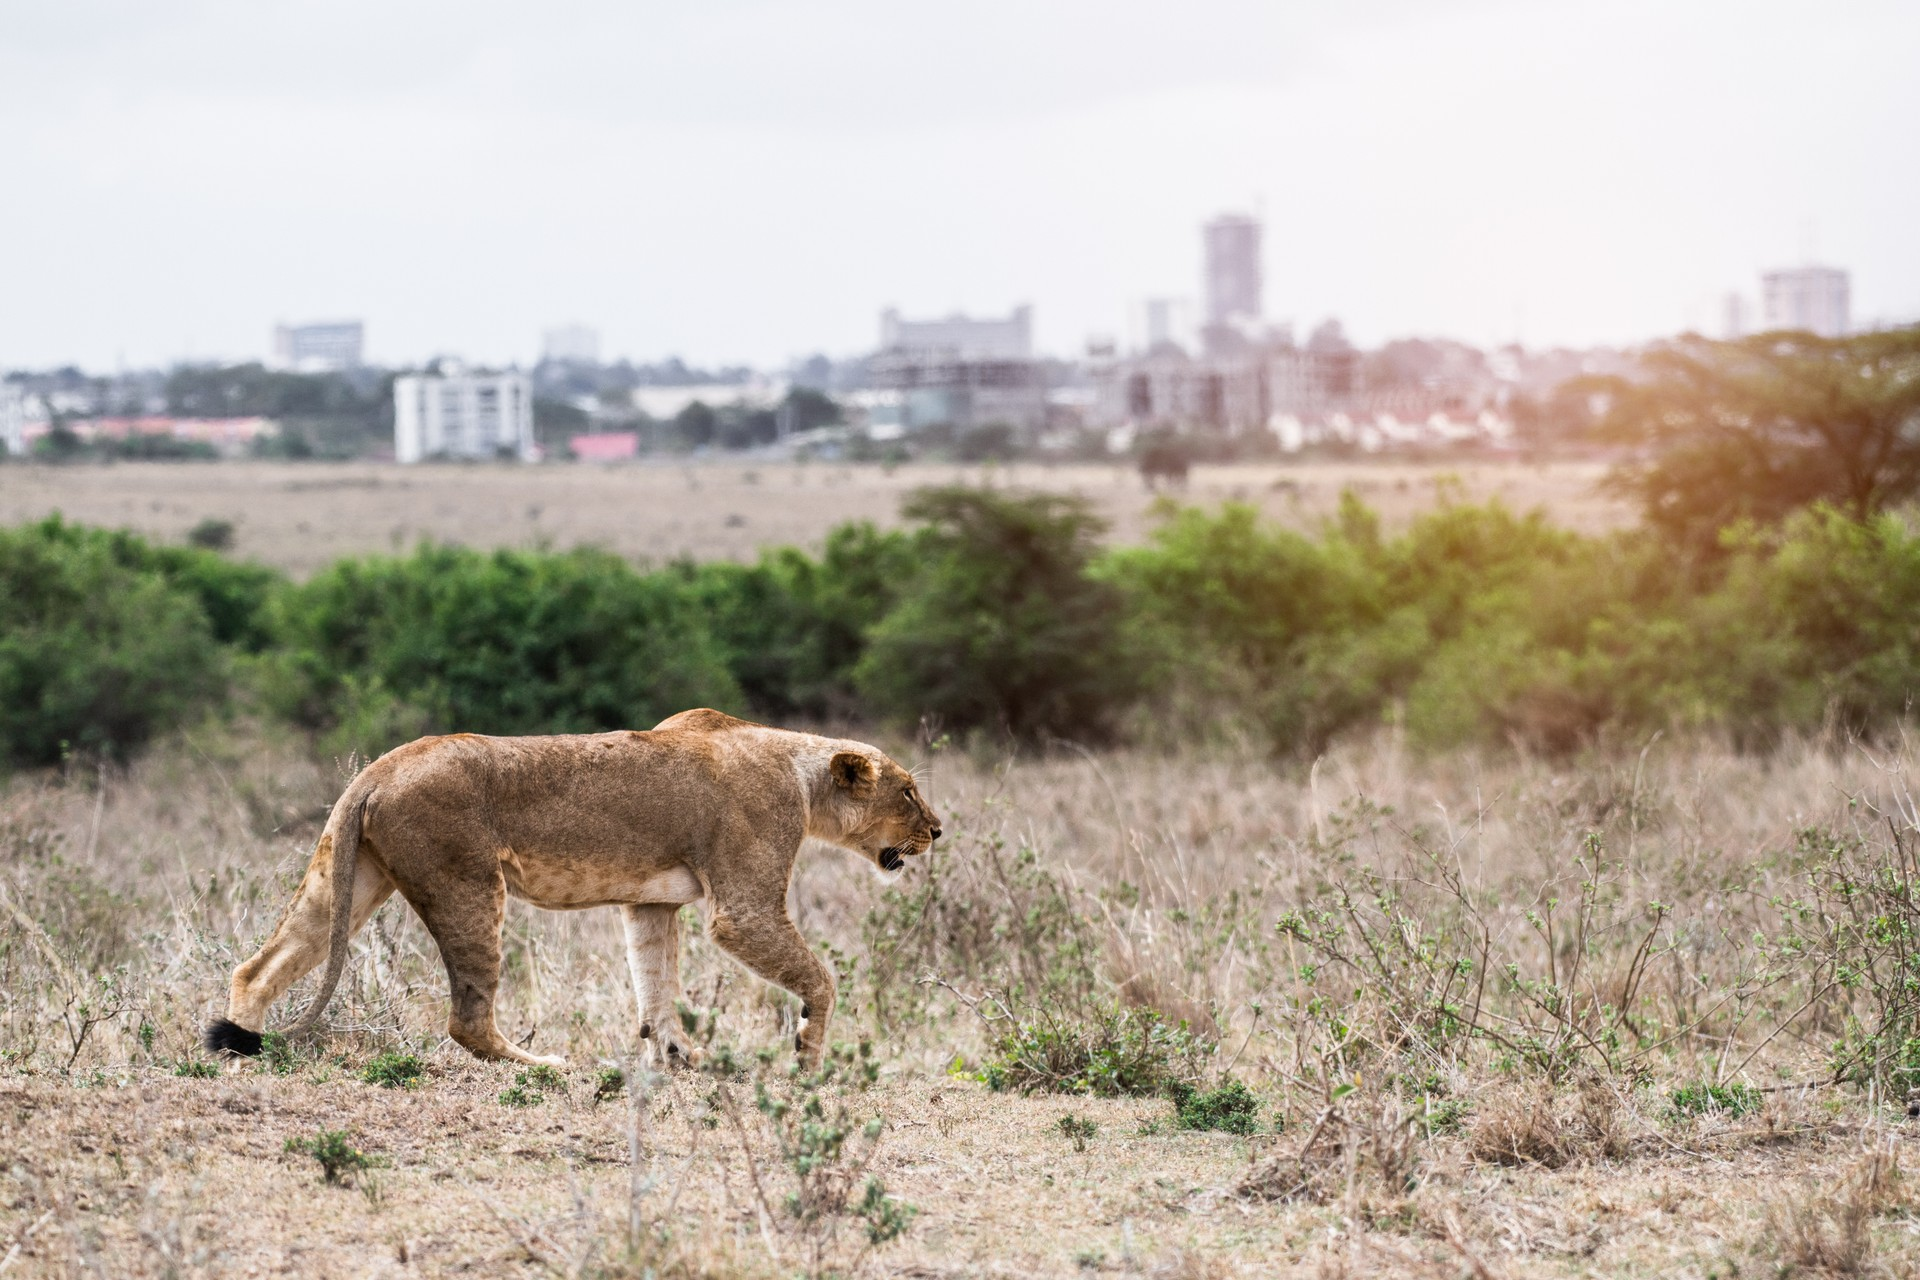 lioness in Nairobi National Park with city skyline